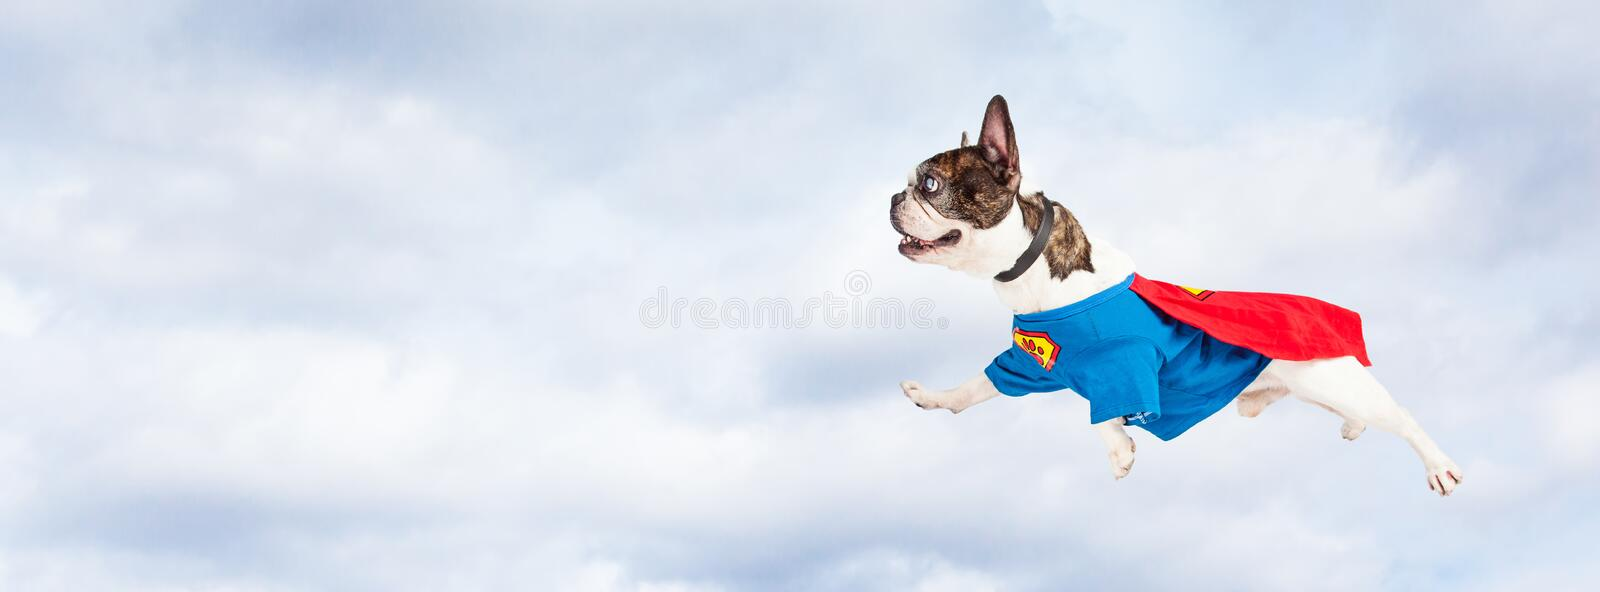 Super Hero Dog Flying Through Sky. Funny photo of French Bulldog breed dog wearing super hero costume flying through clouds in the sky stock image